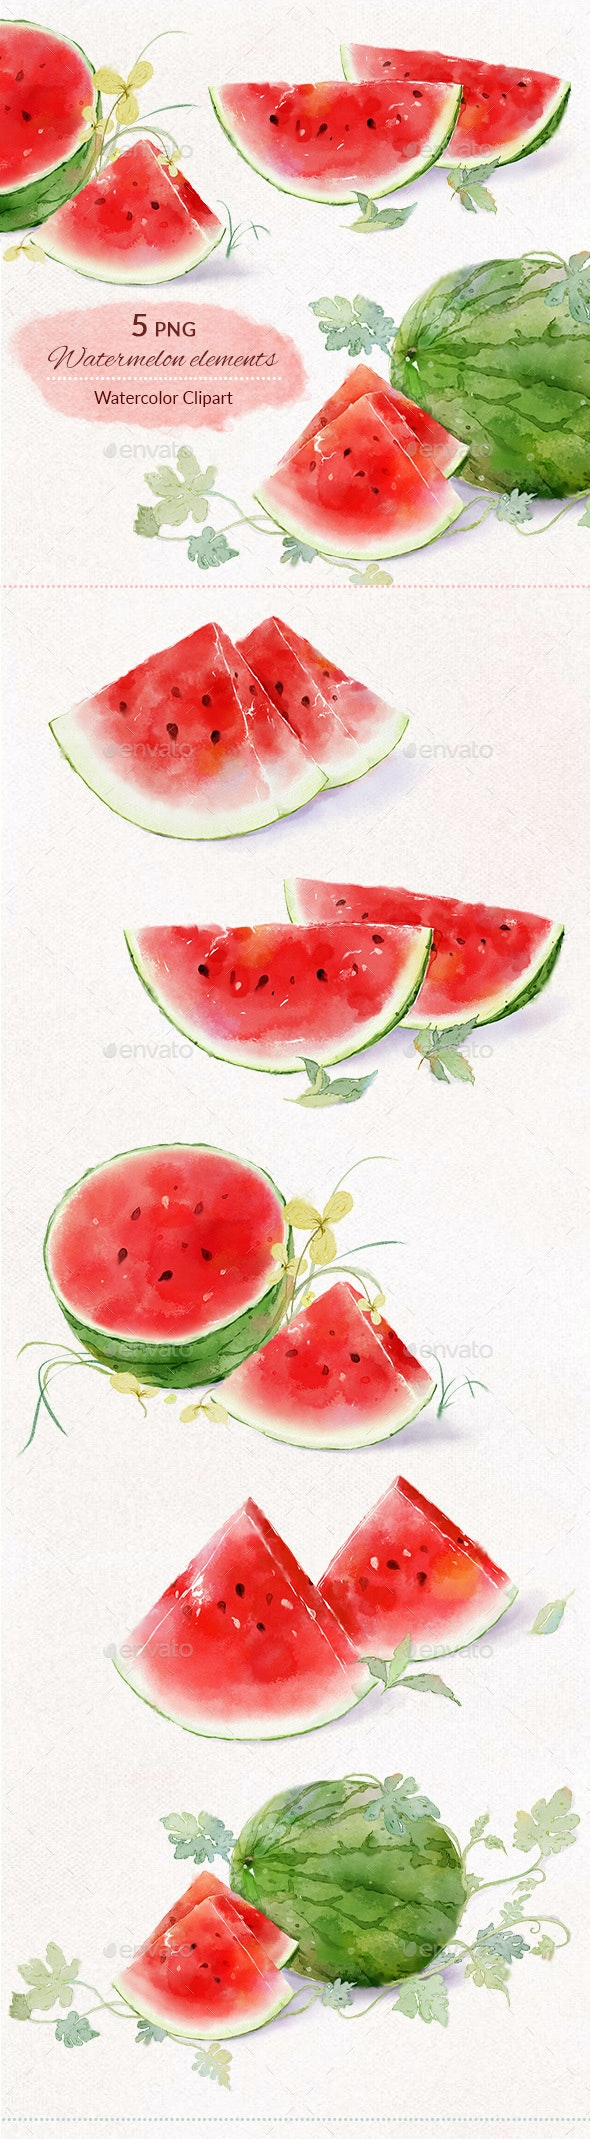 Watermelon Watercolor Digital Illustration Clipart PNG - Objects Illustrations